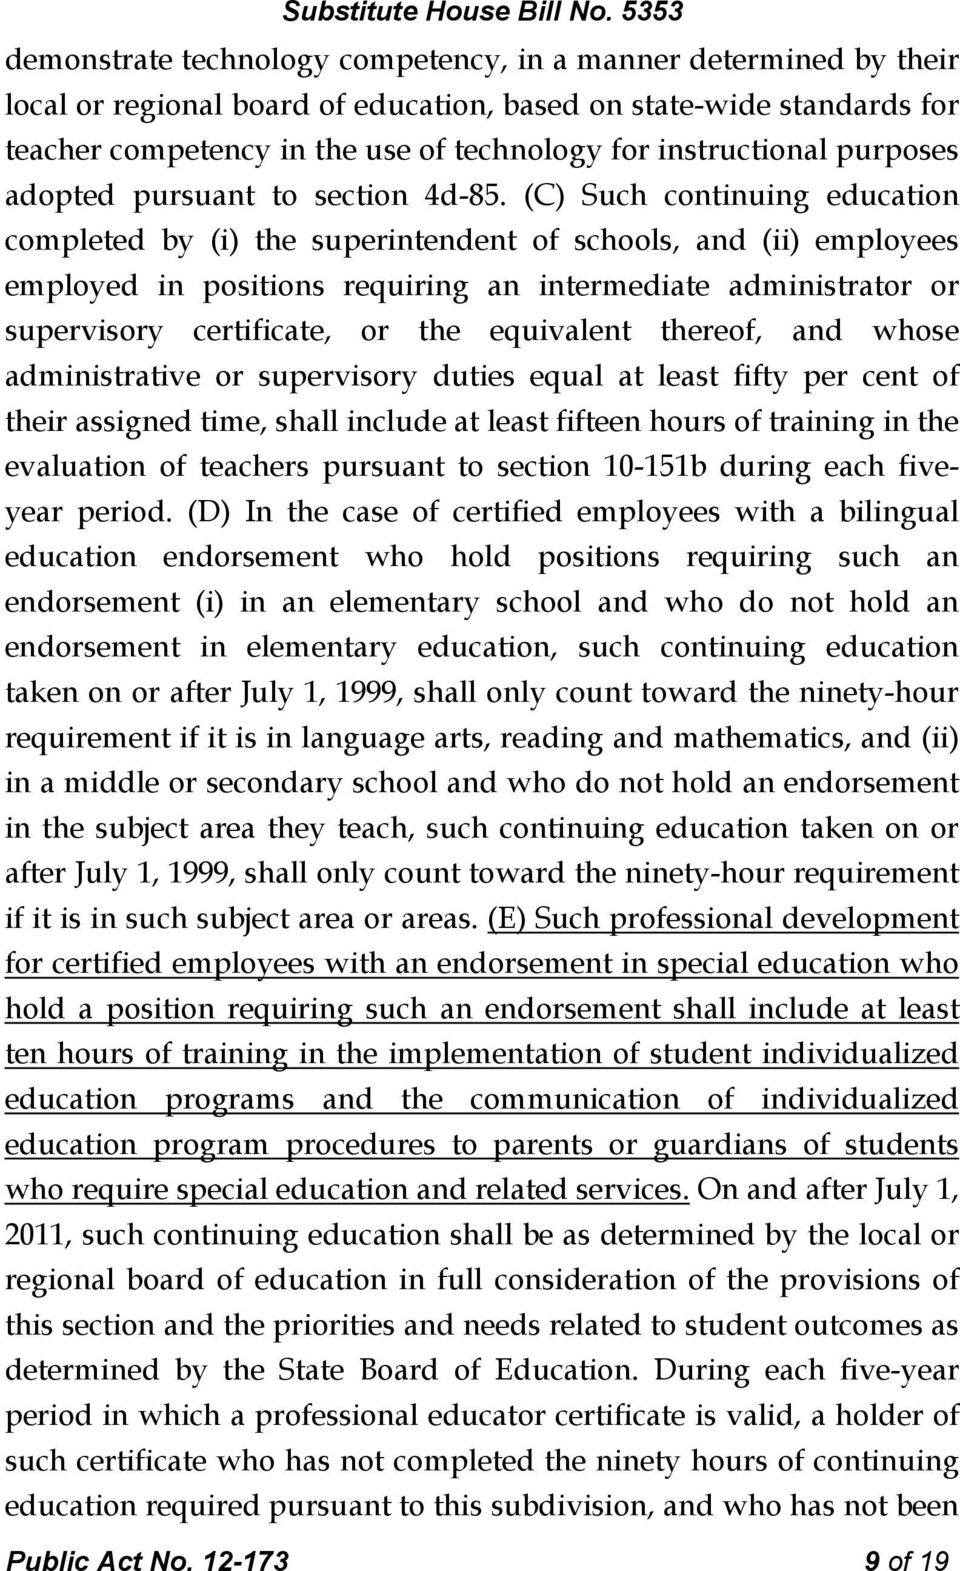 (C) Such continuing education completed by (i) the superintendent of schools, and (ii) employees employed in positions requiring an intermediate administrator or supervisory certificate, or the